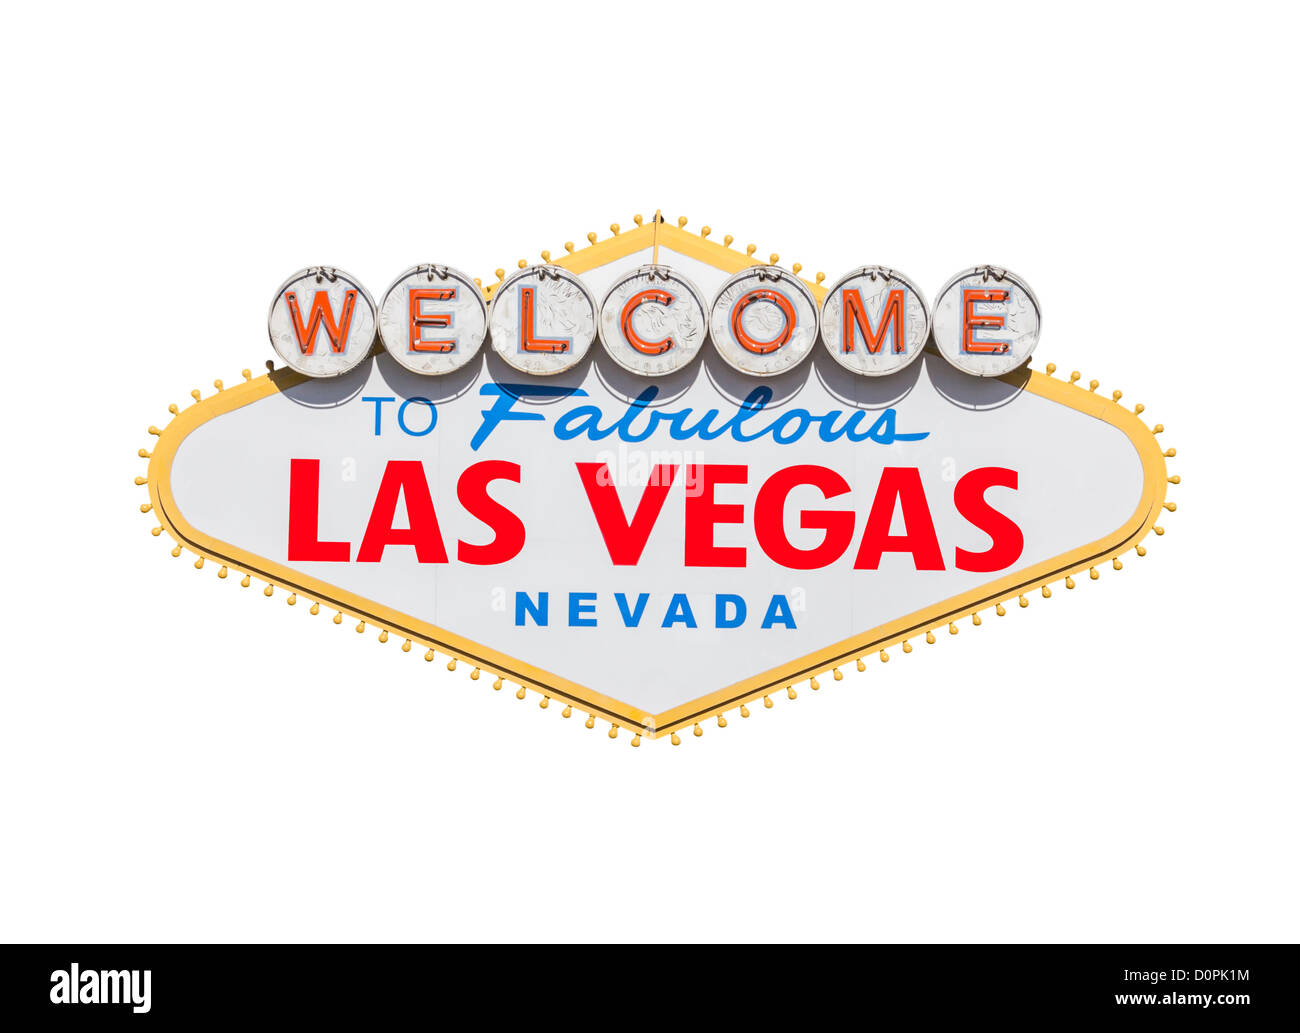 Las Vegas welcome sign diamond shape isolated with clipping path. - Stock Image